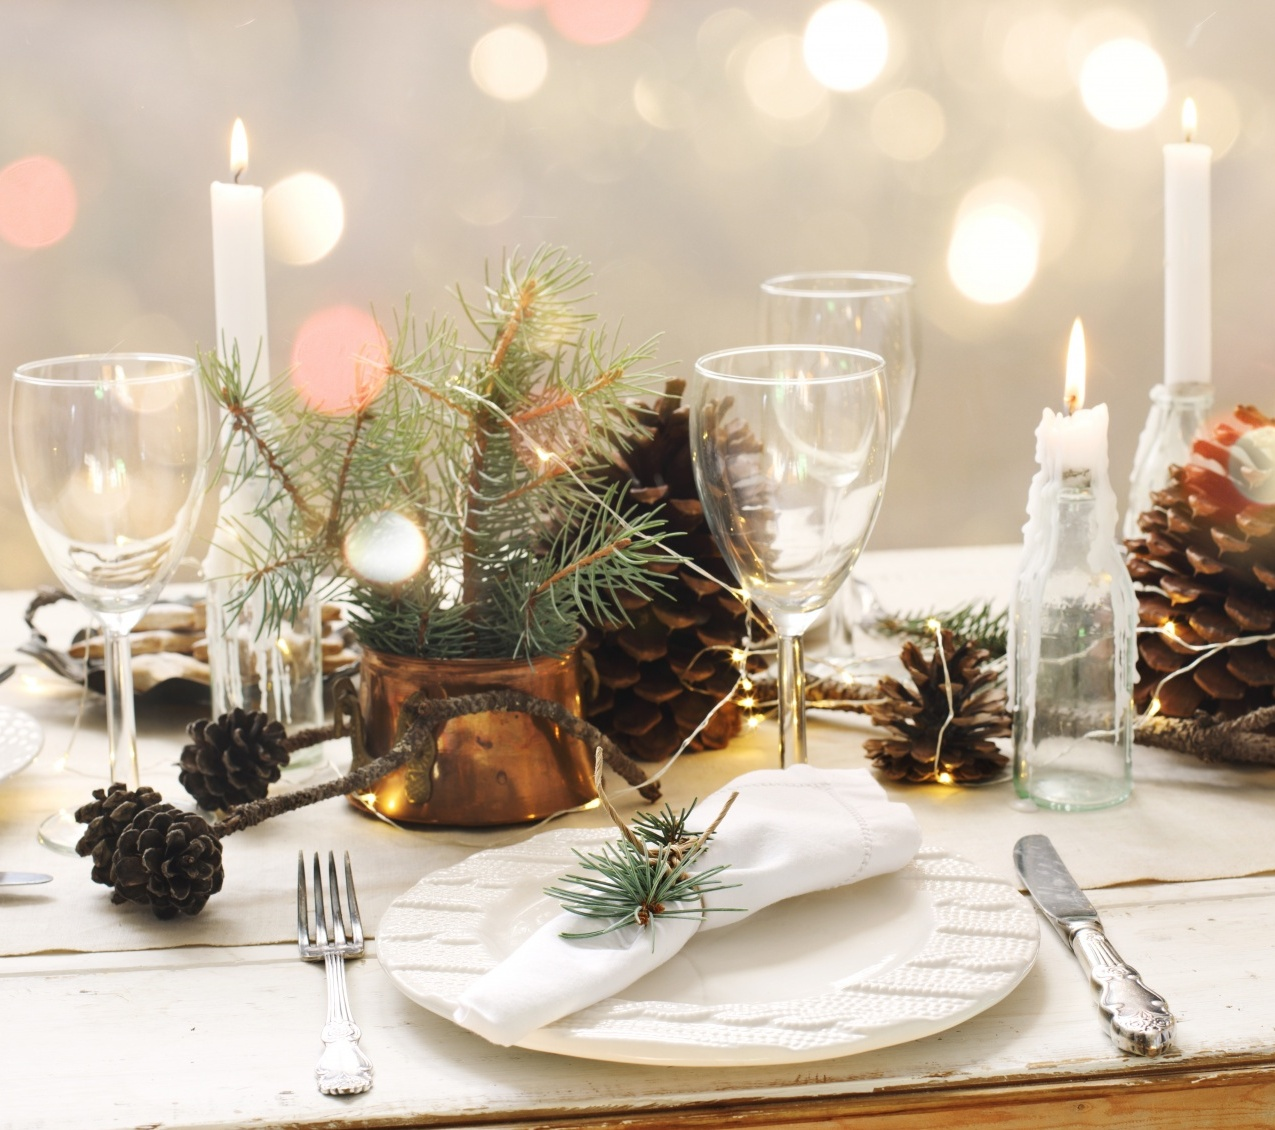 Hostess gifts that aren't boring showing a holiday table scape with pinecones, candles and dinner ware